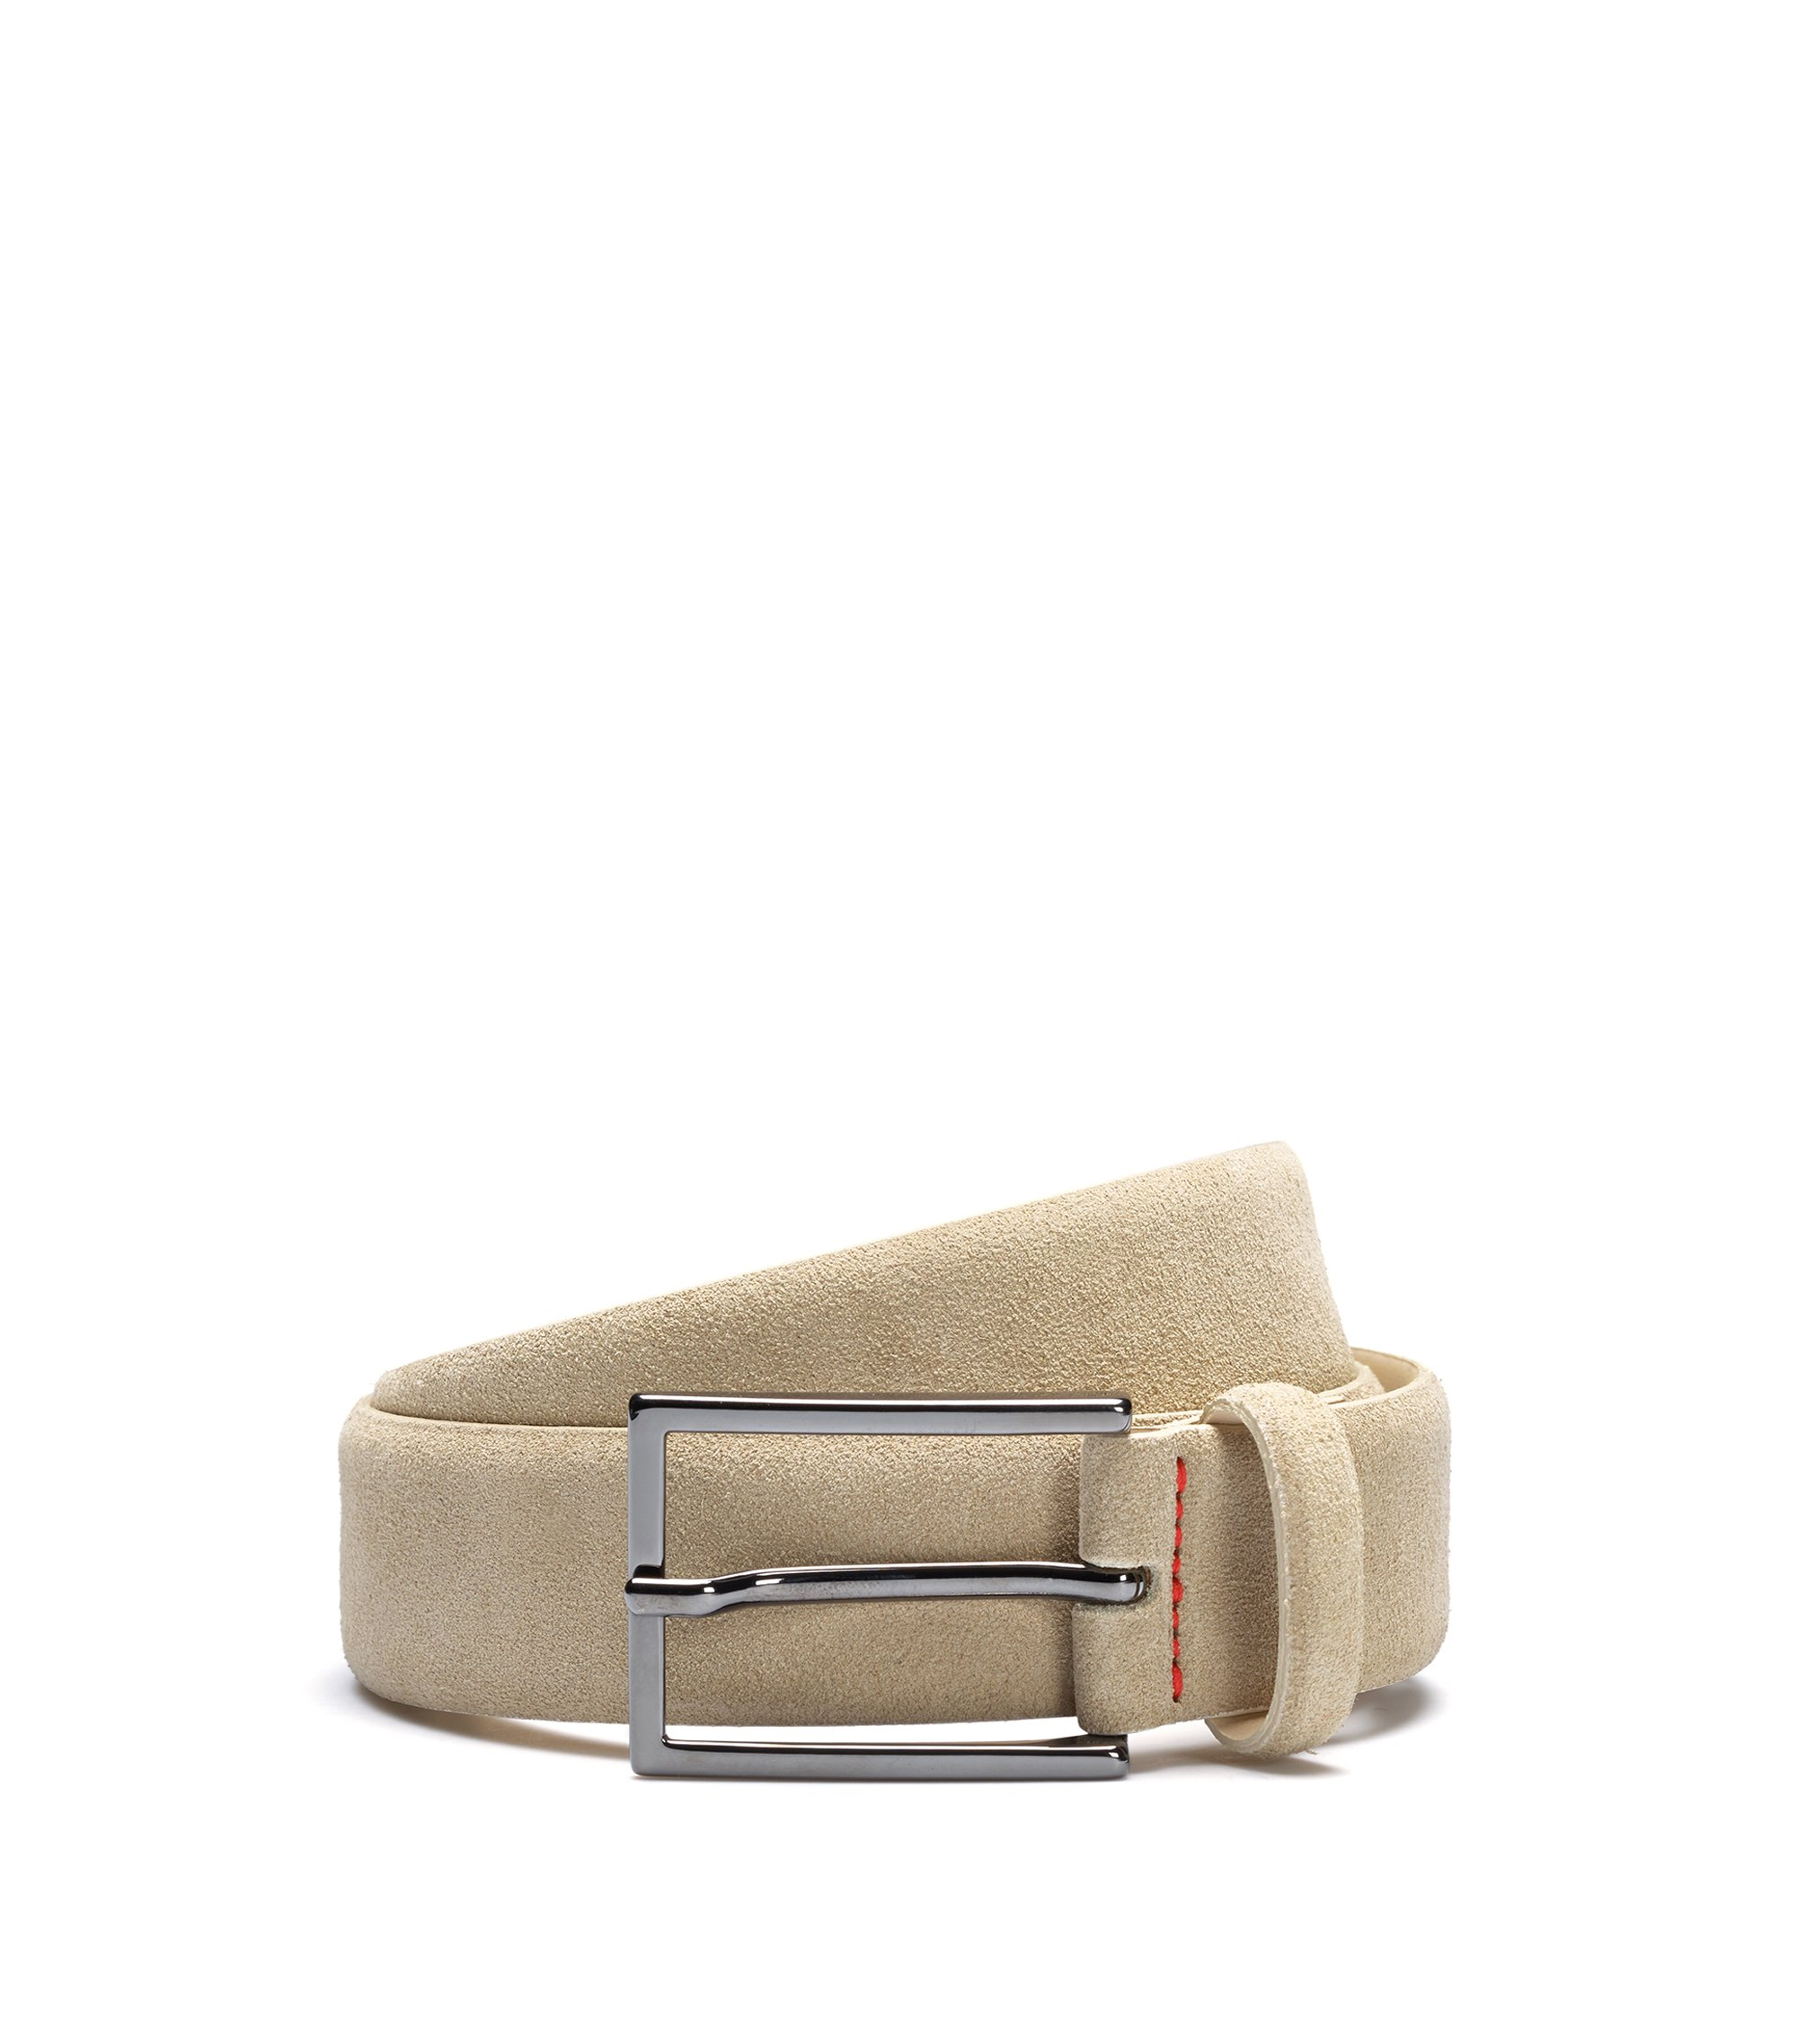 Suede Belt | Gavrilo SL, Light Beige